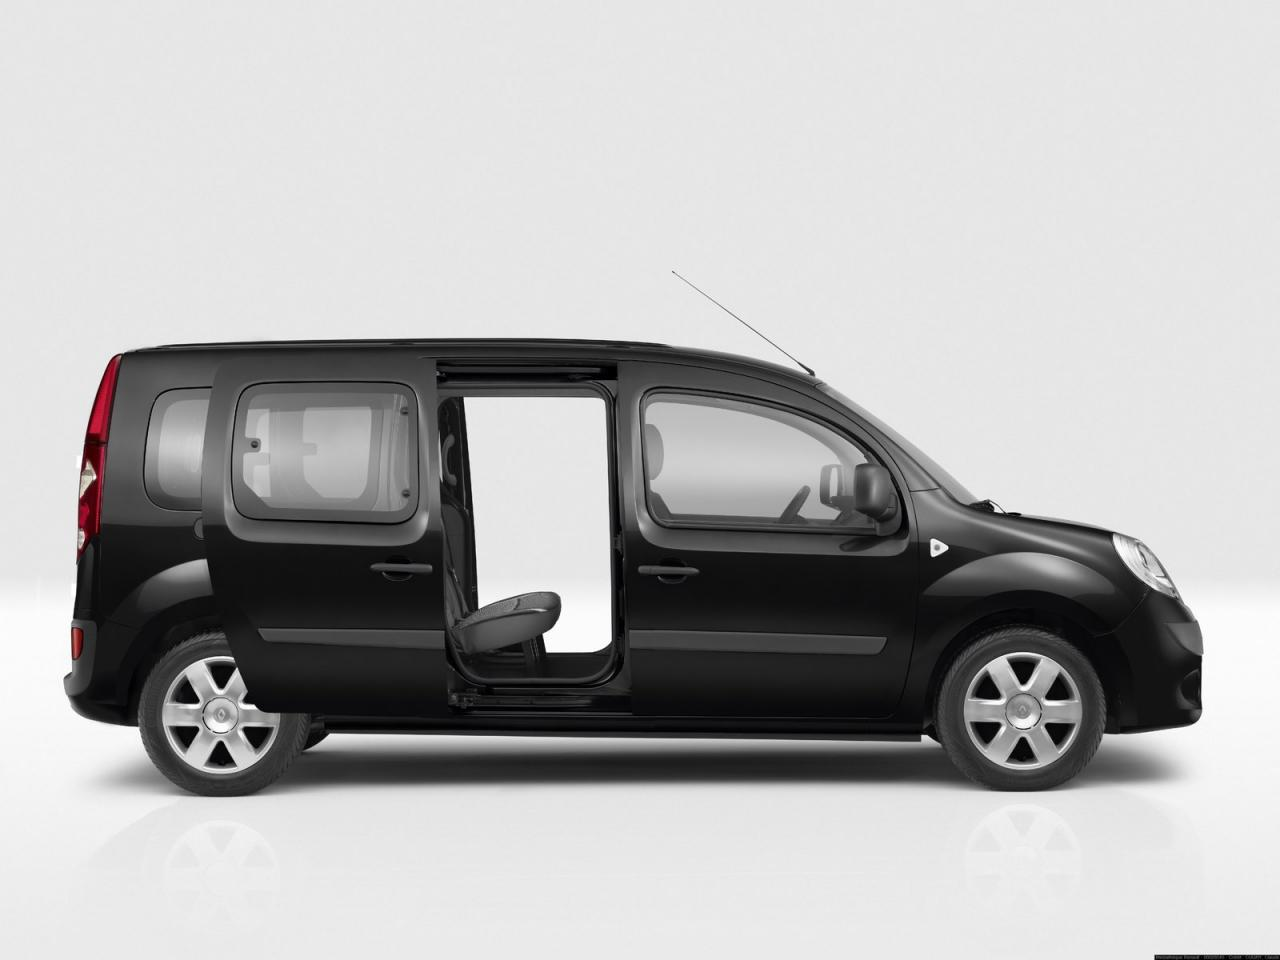 2012 renault grand kangoo 7 seat van price 20 750. Black Bedroom Furniture Sets. Home Design Ideas